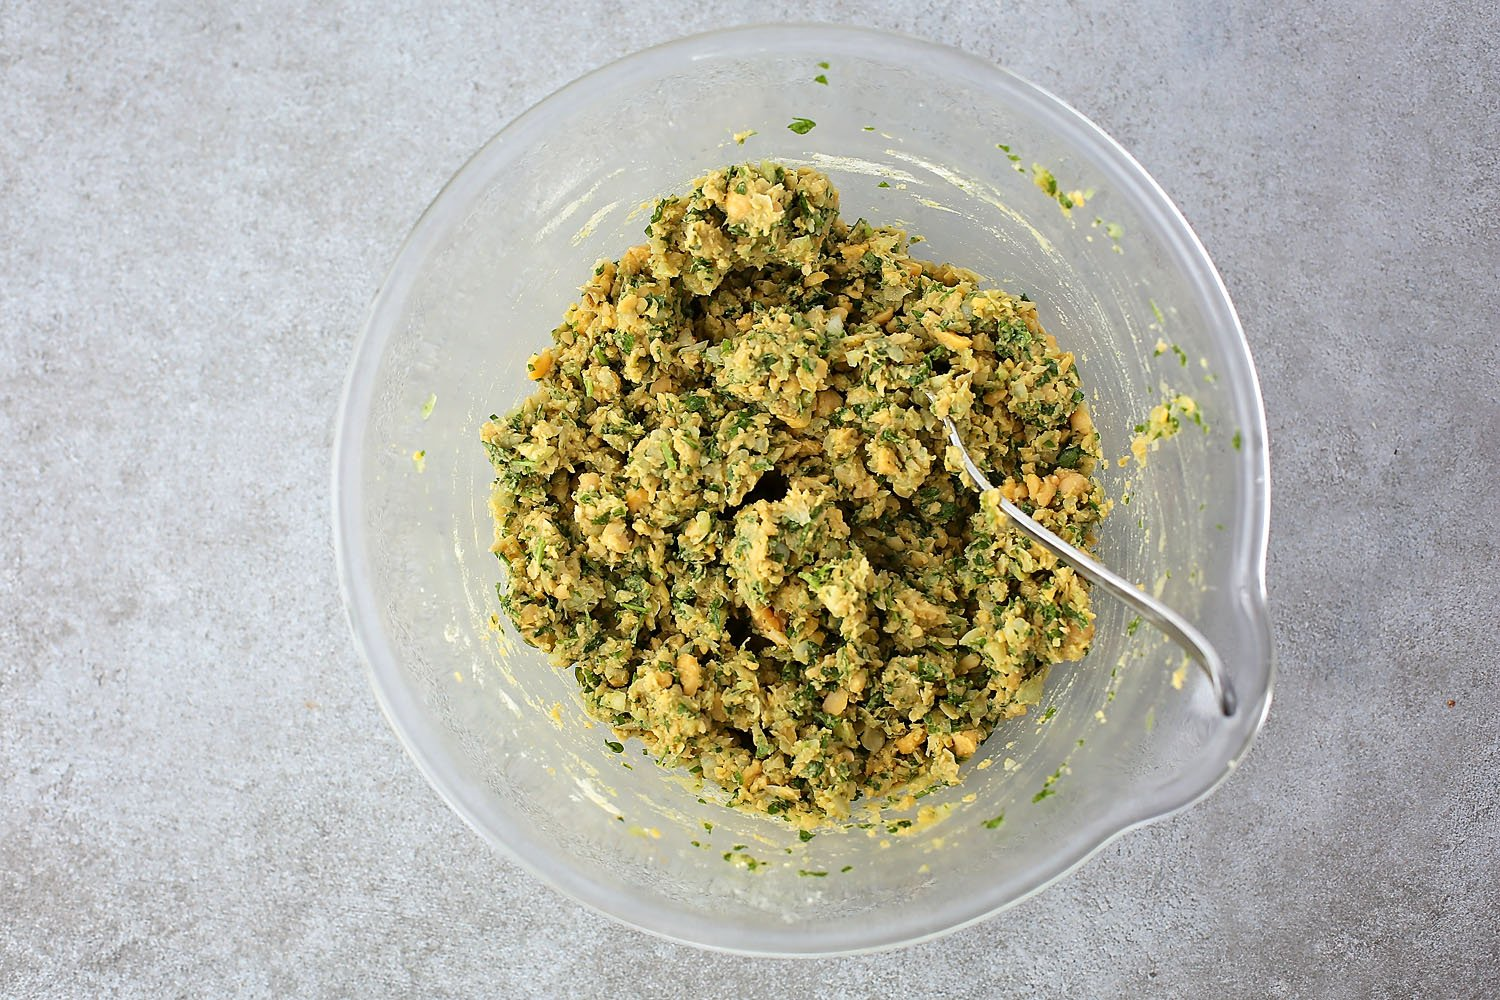 mixture in the bowl to make falafel